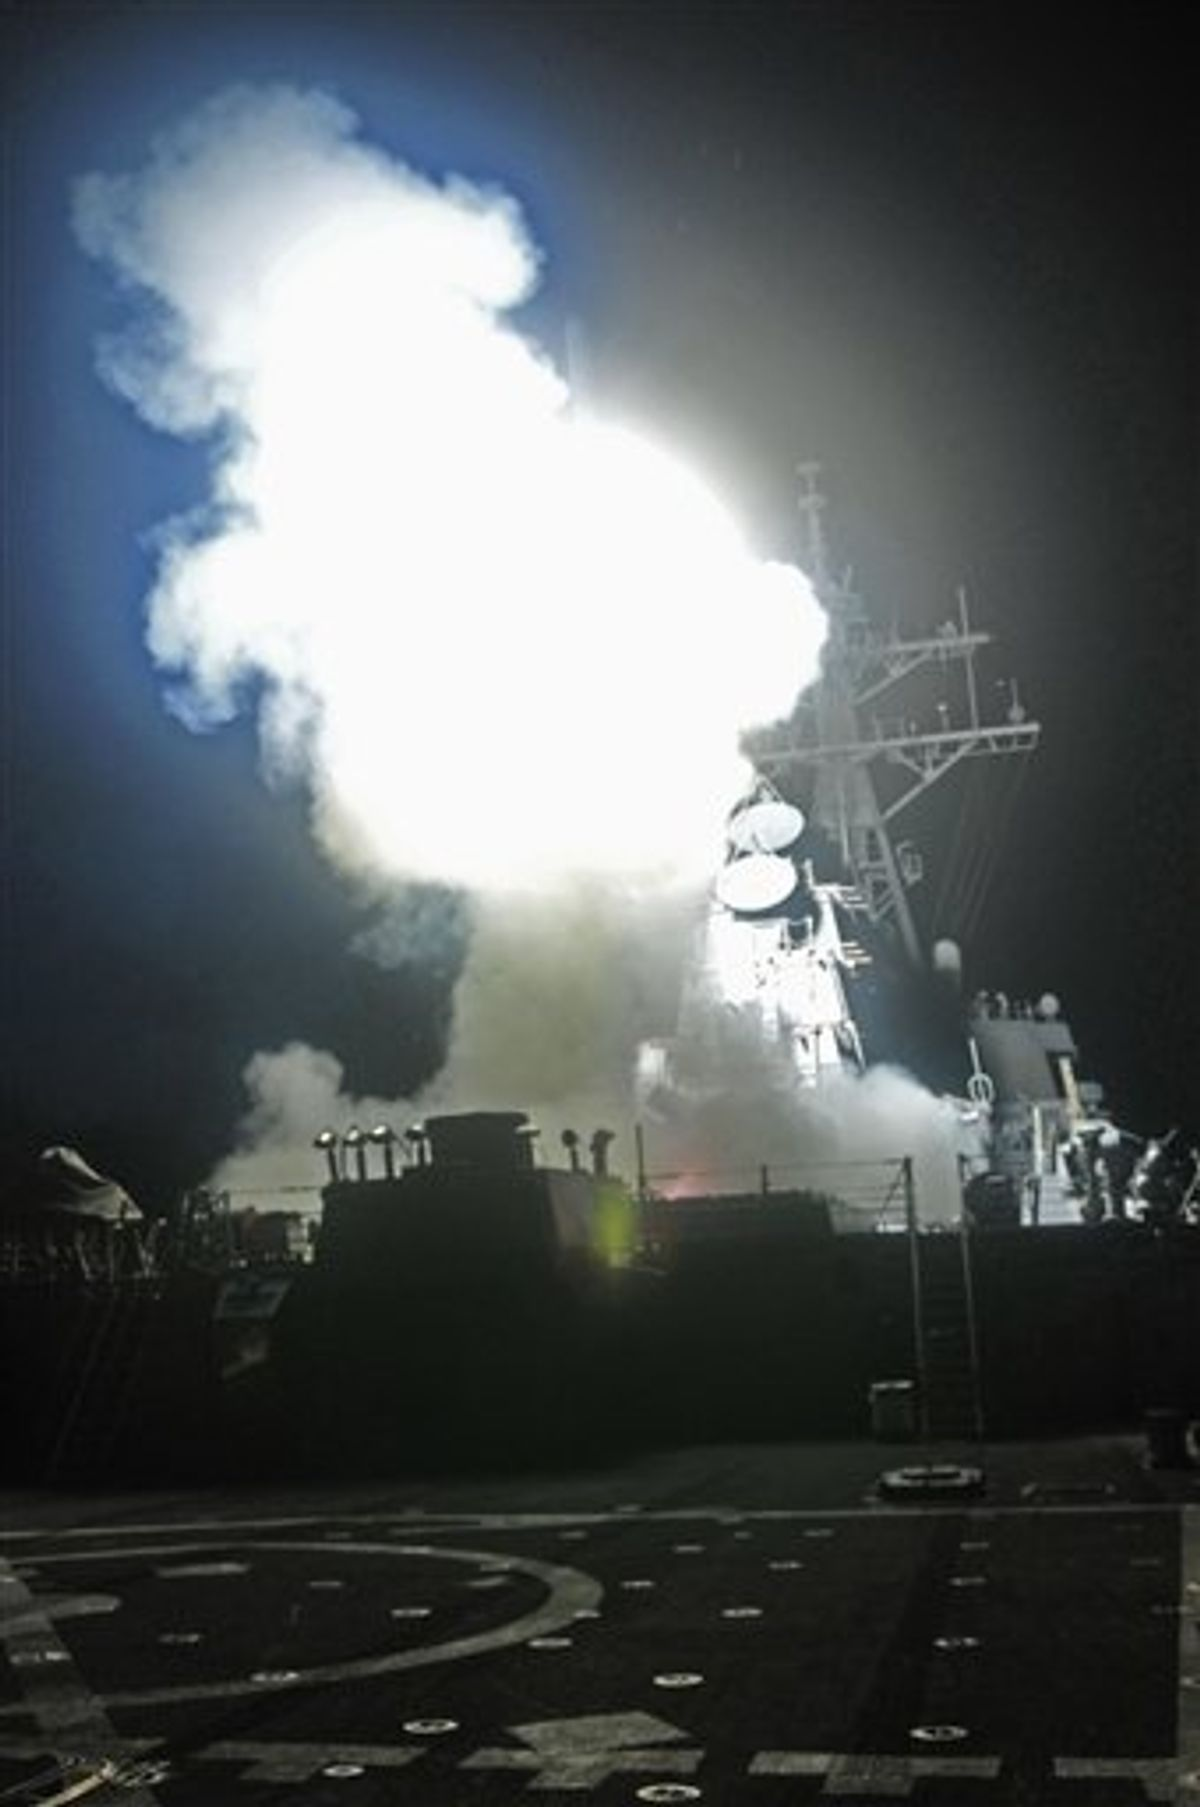 This Saturday, March 19, 2011 photo provided by the U.S. Navy shows the Arleigh Burke-class guided-missile destroyer USS Barry (DDG 52) as it launches a Tomahawk missile in support of Operation Odyssey Dawn from the Mediterranean Sea . The U.S. fired more than 100 cruise missiles from the sea while French fighter jets targeted Moammar Gadhafi's forces from the air on Saturday, launching the broadest international military effort since the Iraq war in support of an uprising that had seemed on the verge of defeat. (AP Photo/U.S. Navy, MC3 Jonathan Sunderman) (AP)